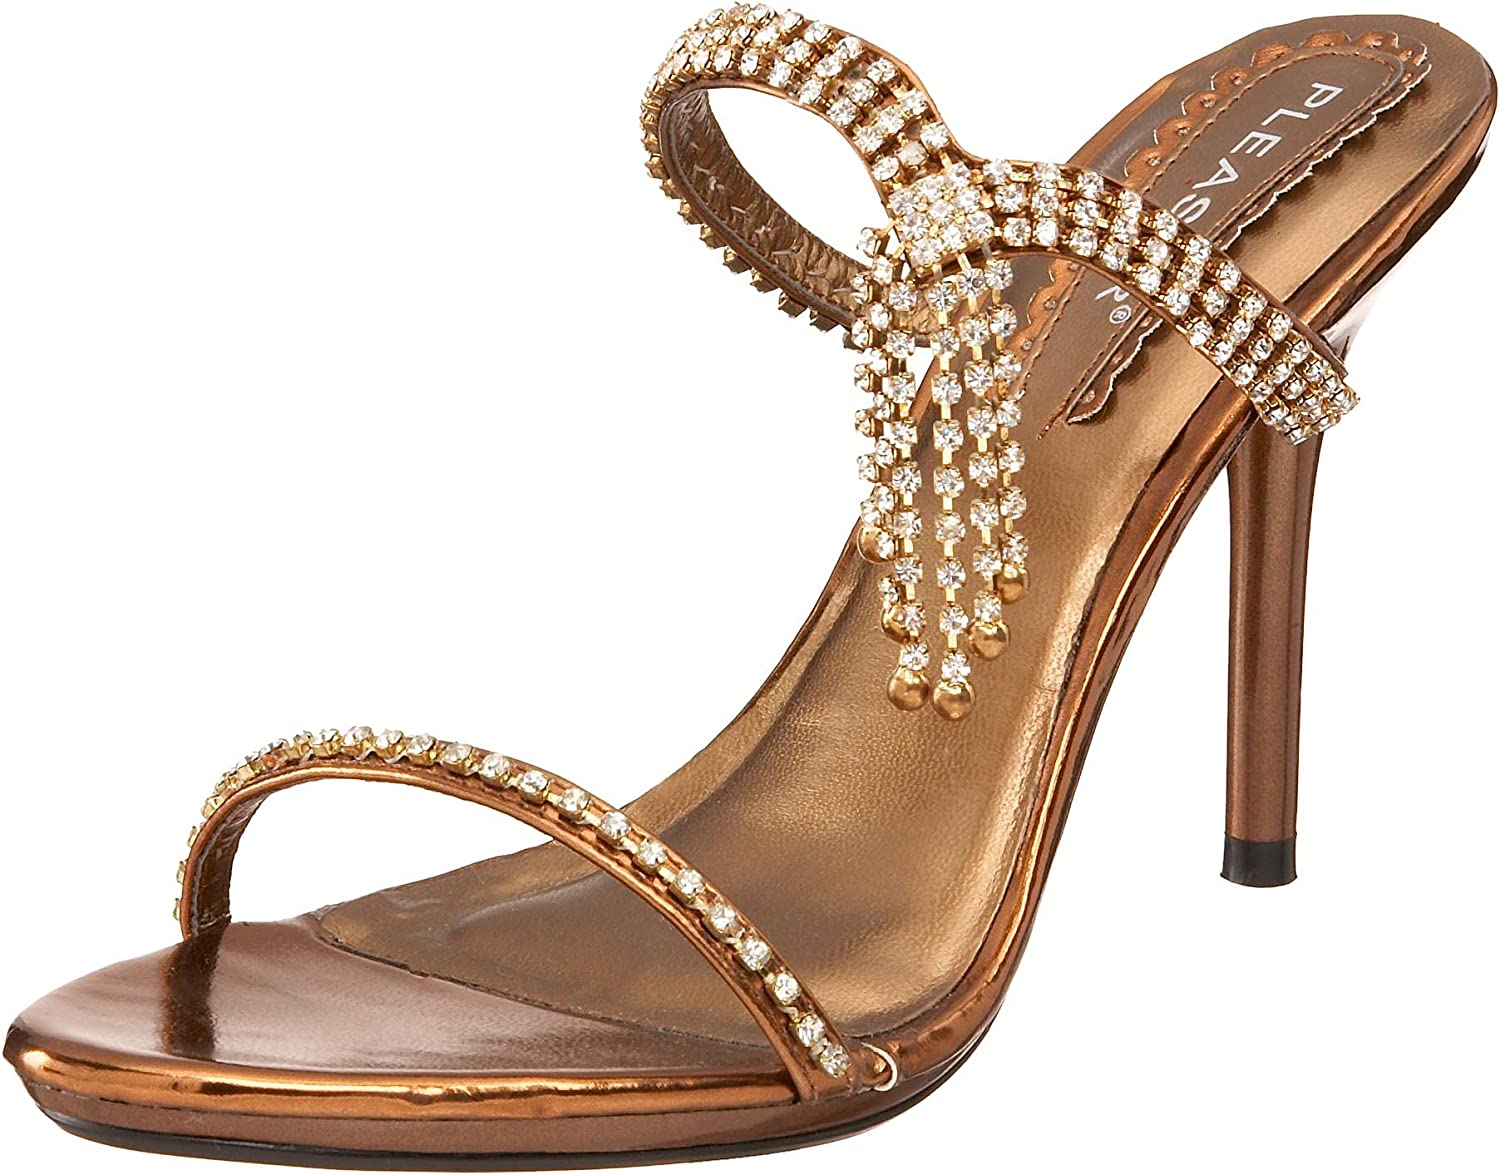 Pleaser Women's Enchant-02 Slip On Sandal,Bronze Metallic PU,9 M US